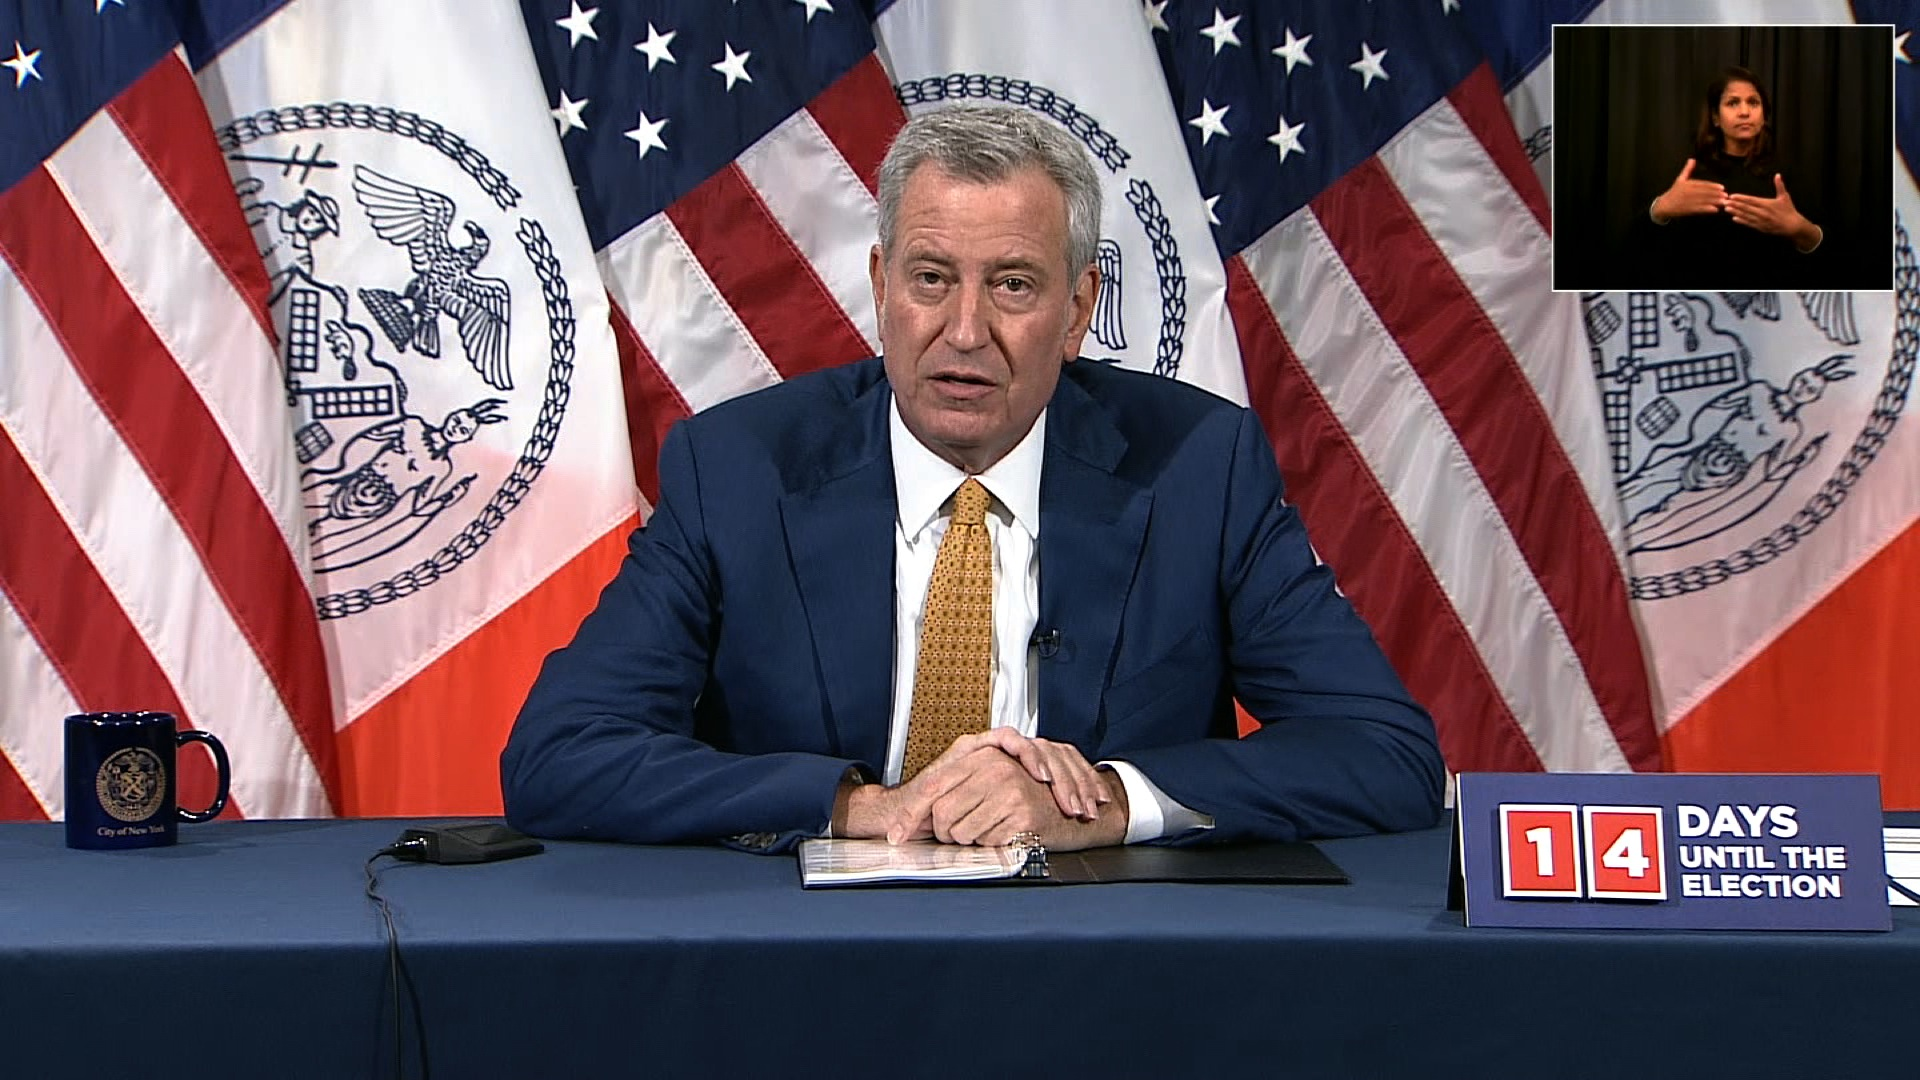 Mayor Bill de Blasio speaks at a press conference in New York on October 20.